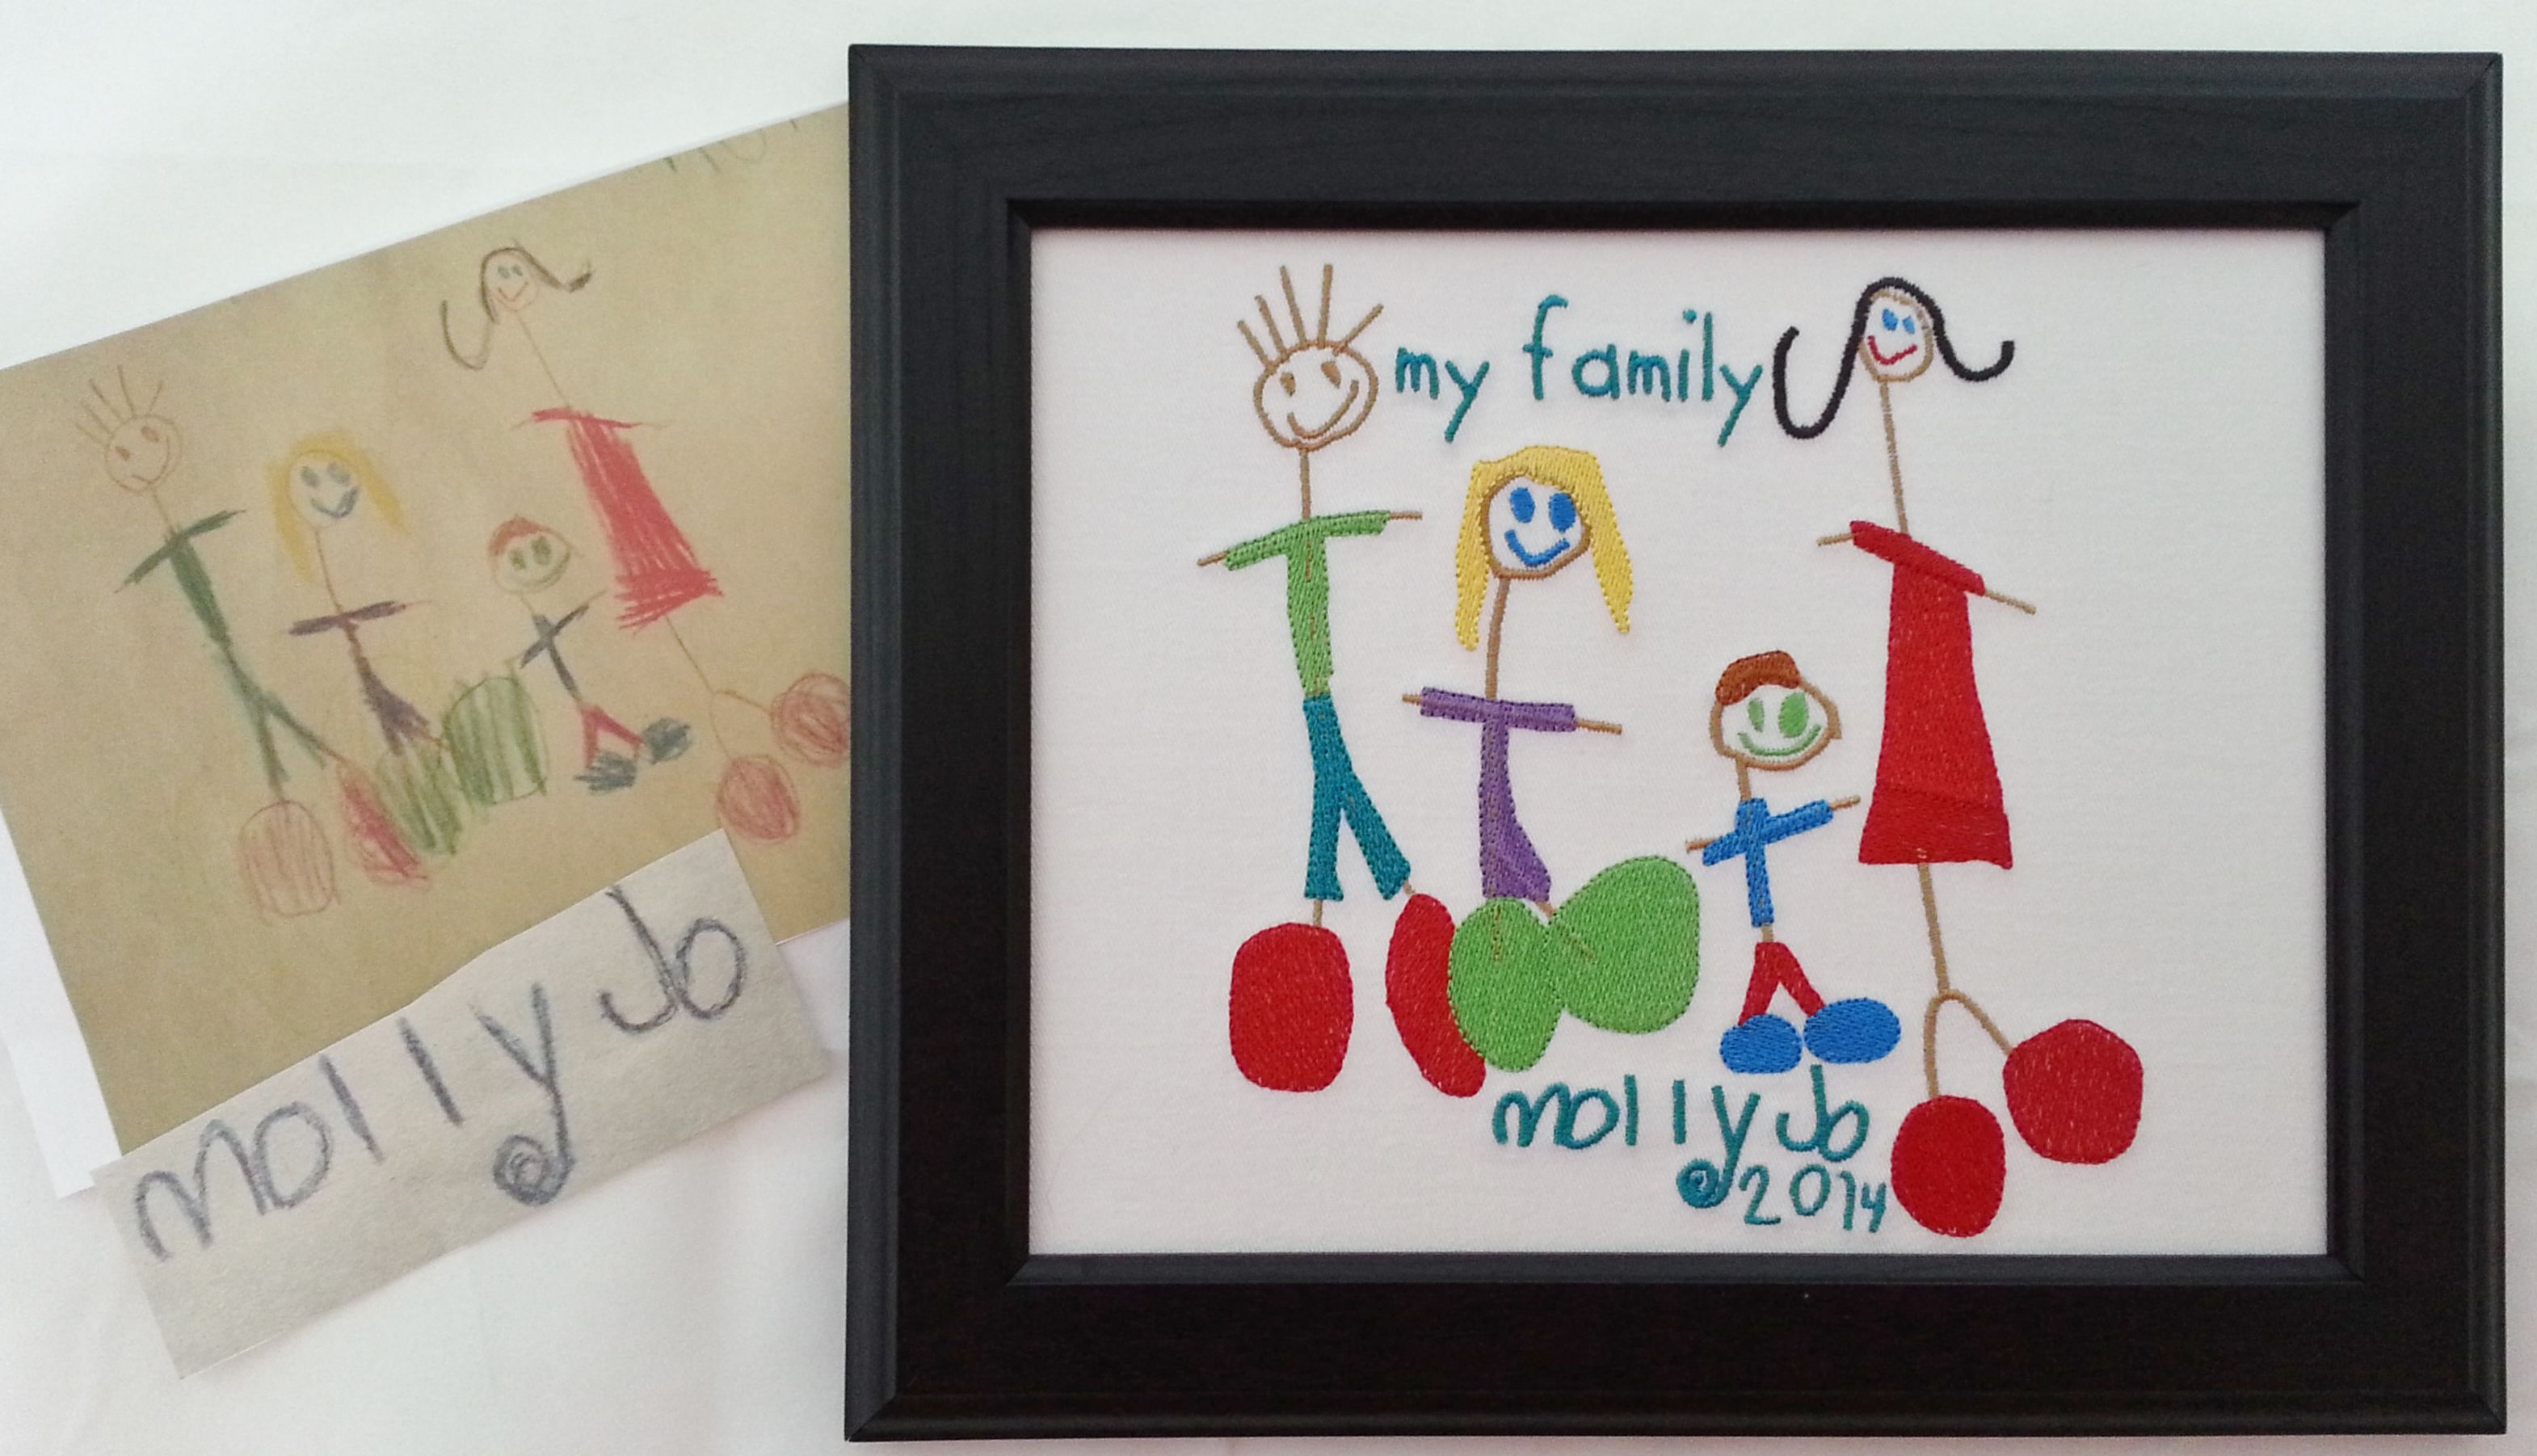 A classic picture of every child's vision of their family.  This was done by Molly Jo.